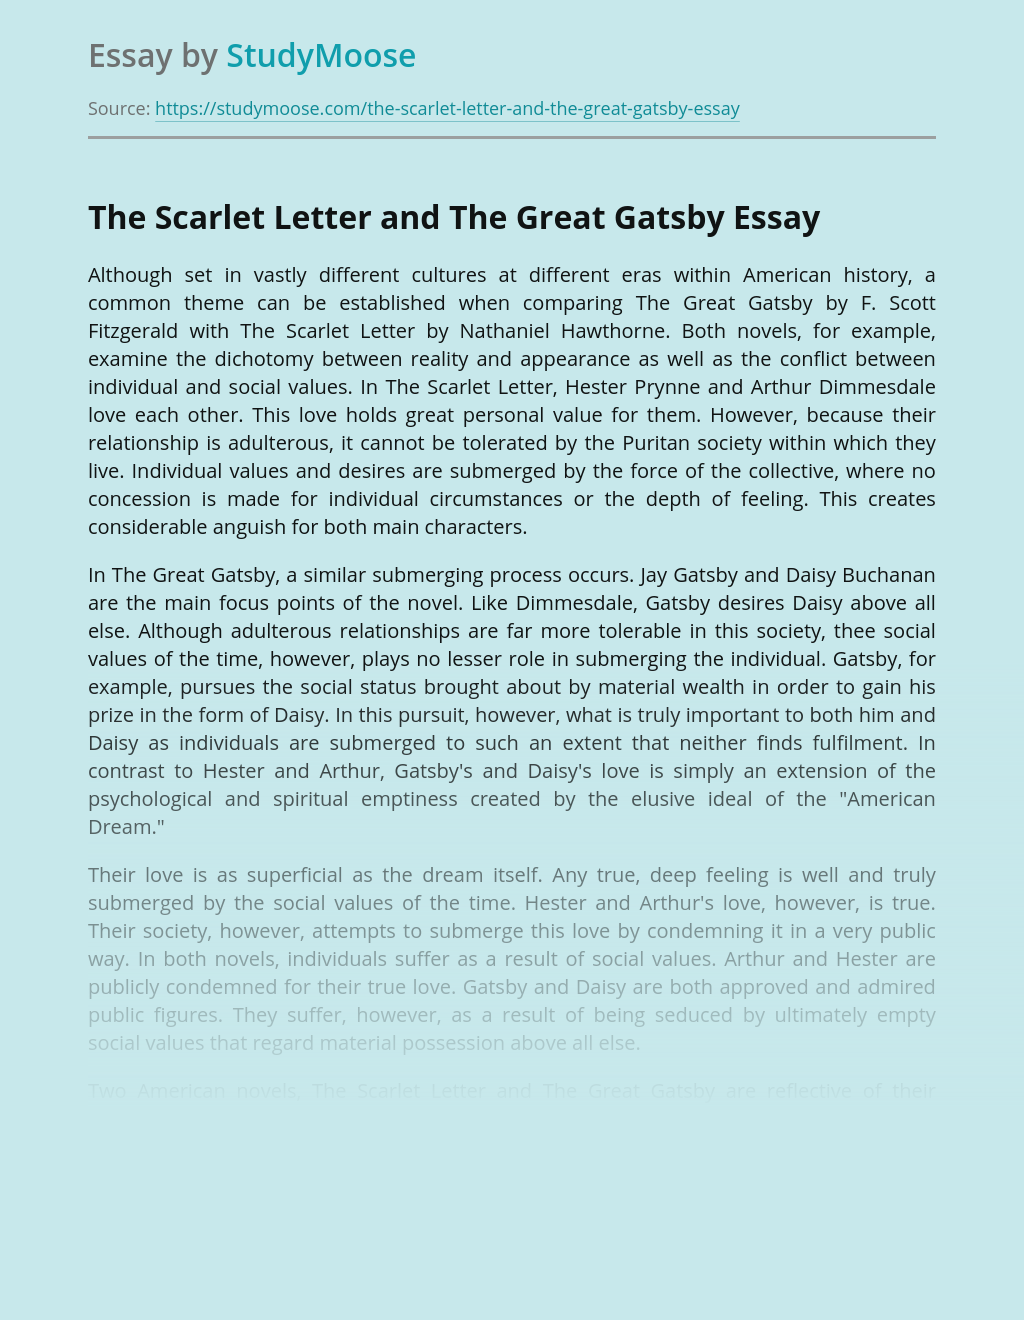 The Scarlet Letter and The Great Gatsby